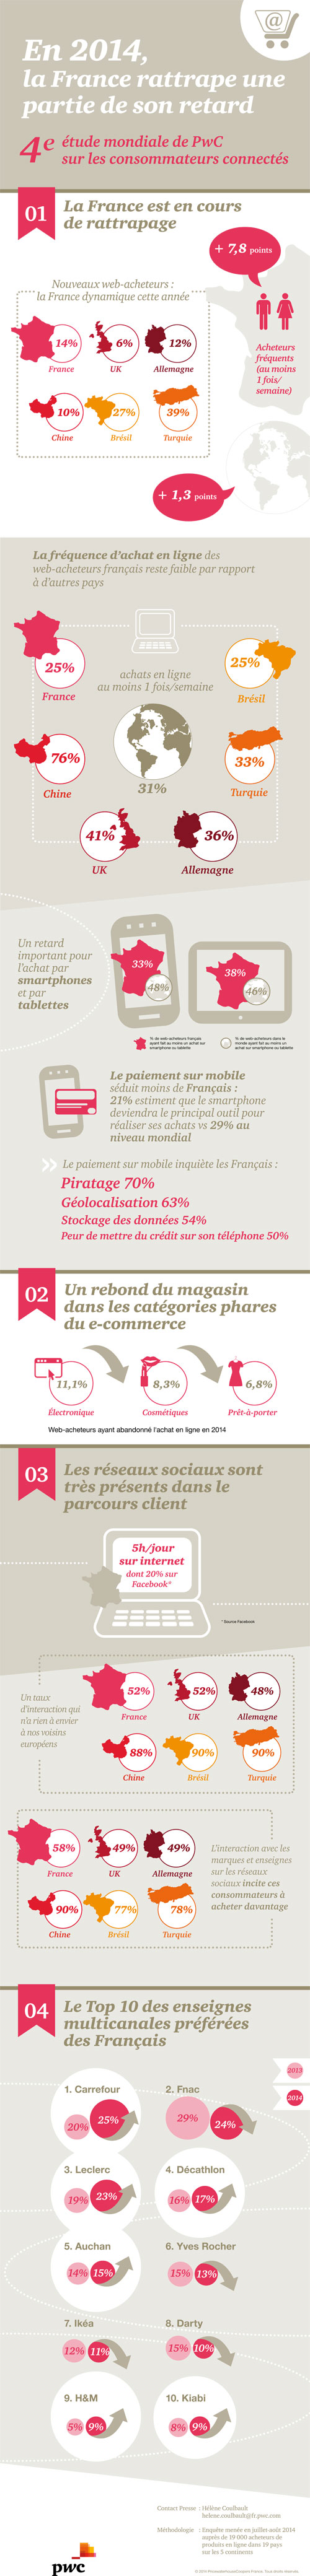 e-commerce-en-france